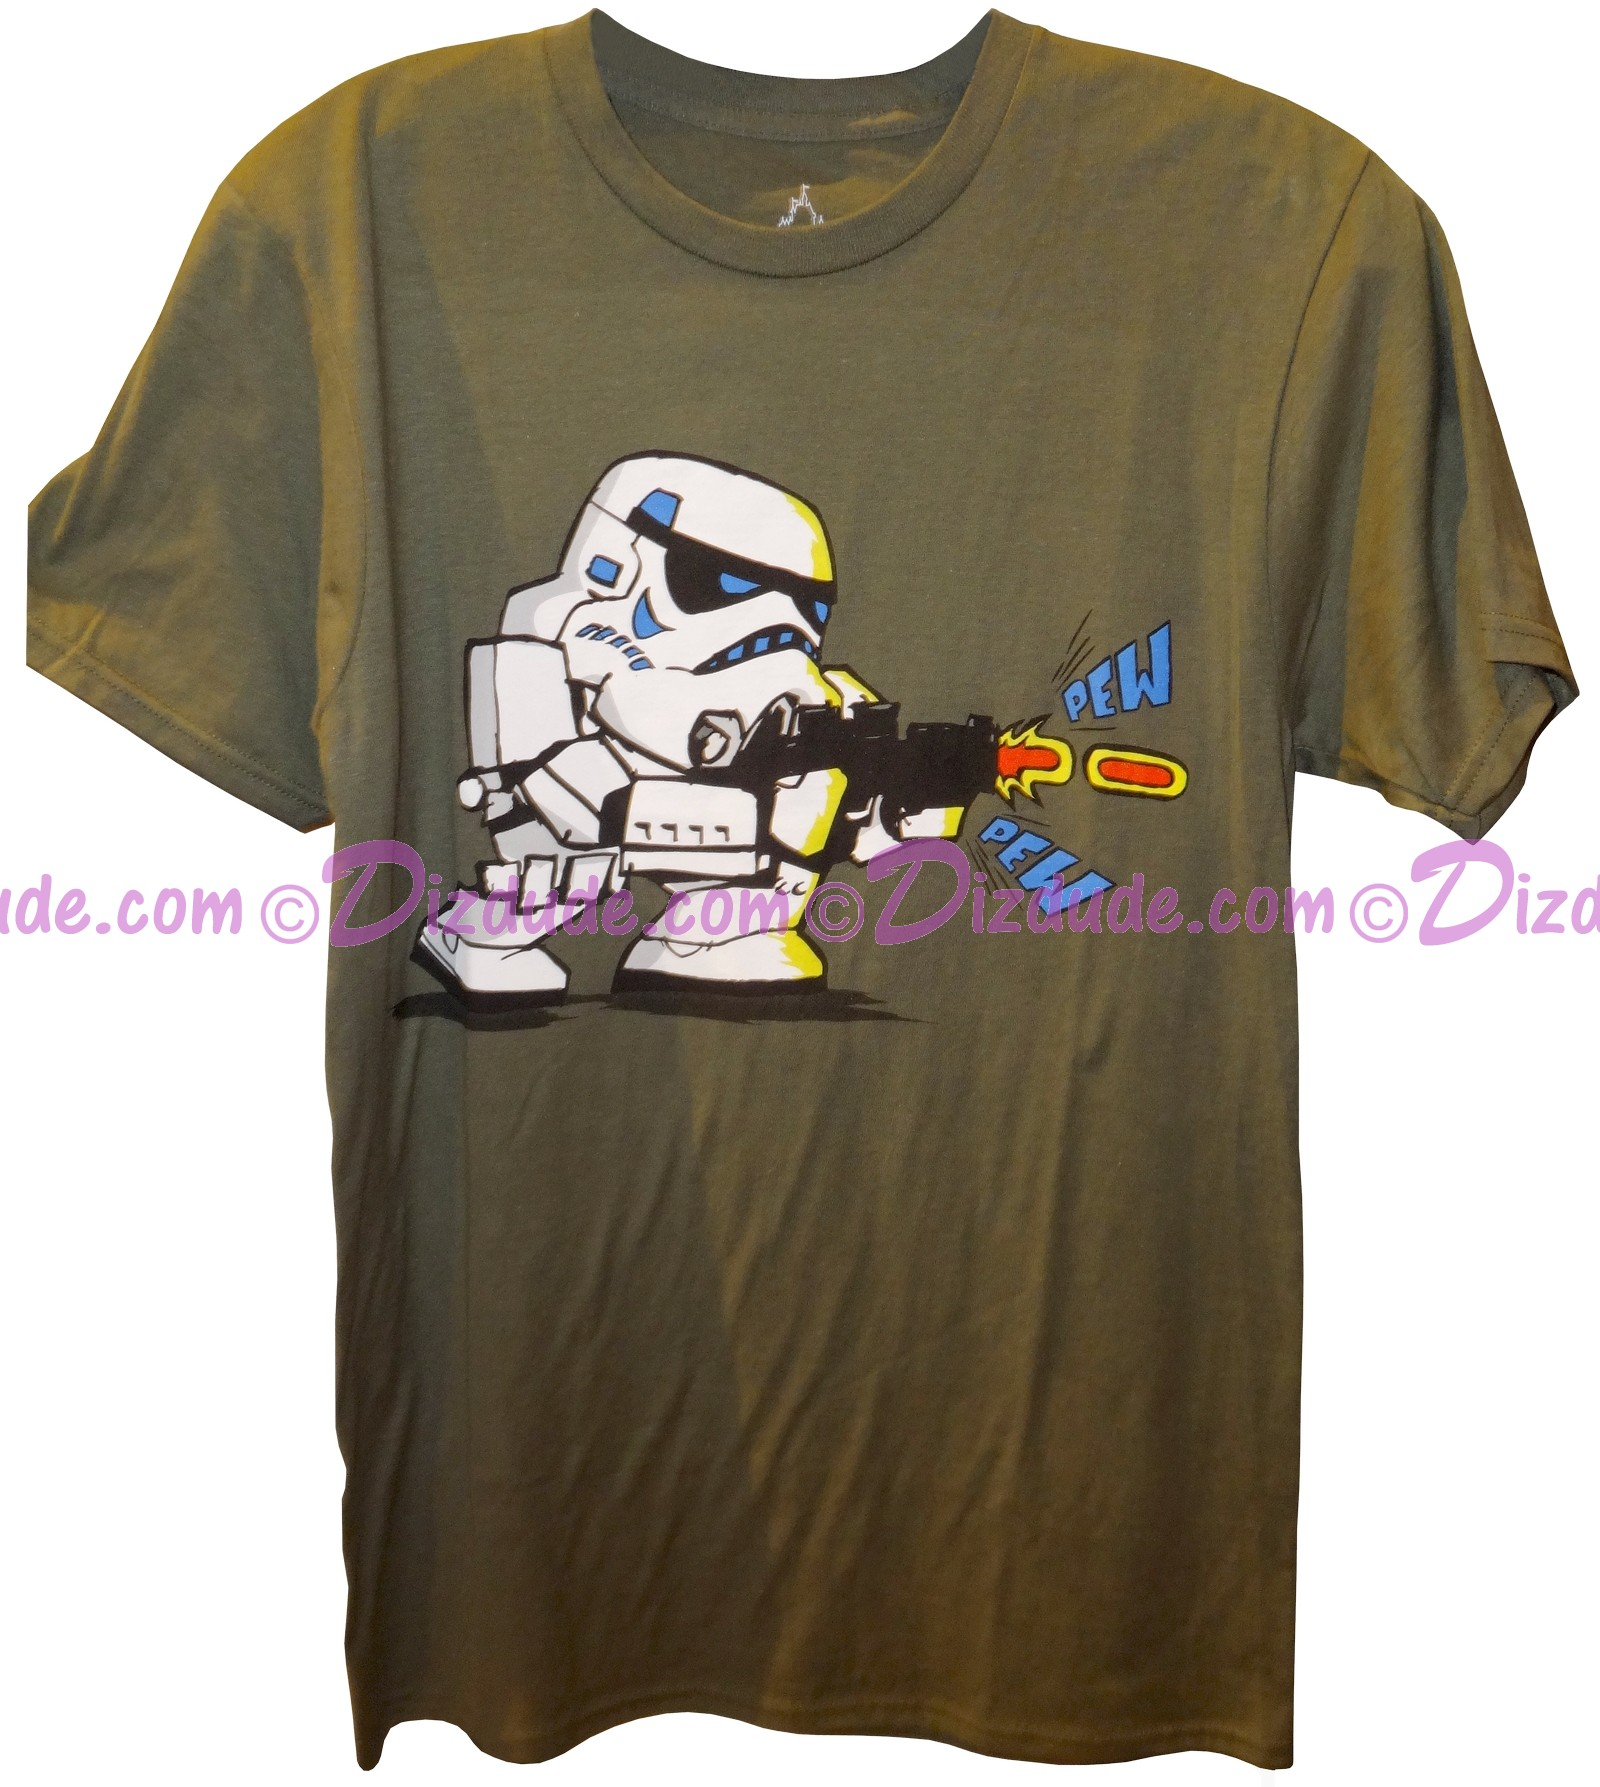 Disney Star Wars Stormtrooper Pew Pew Adult T-Shirt (Tshirt, T shirt or Tee) © Dizdude.com